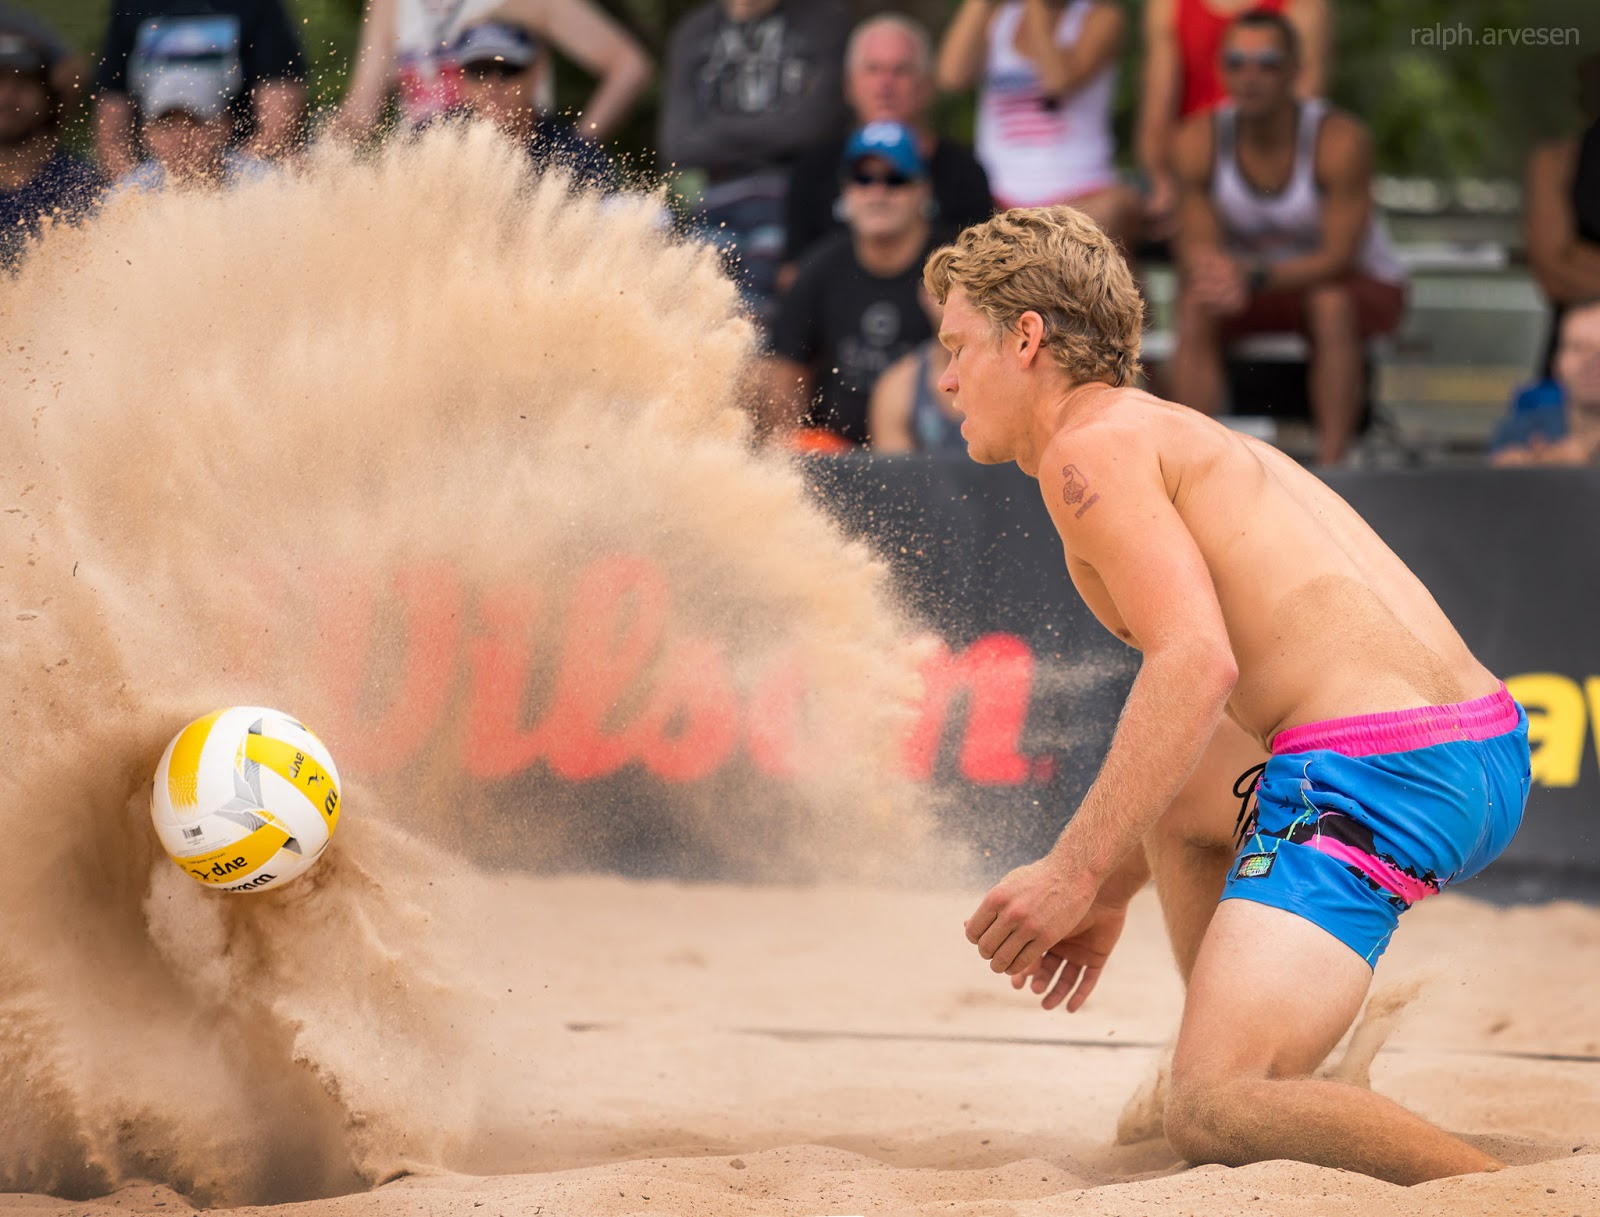 AVP Volleyball | Texas Review | Ralph Arvesen